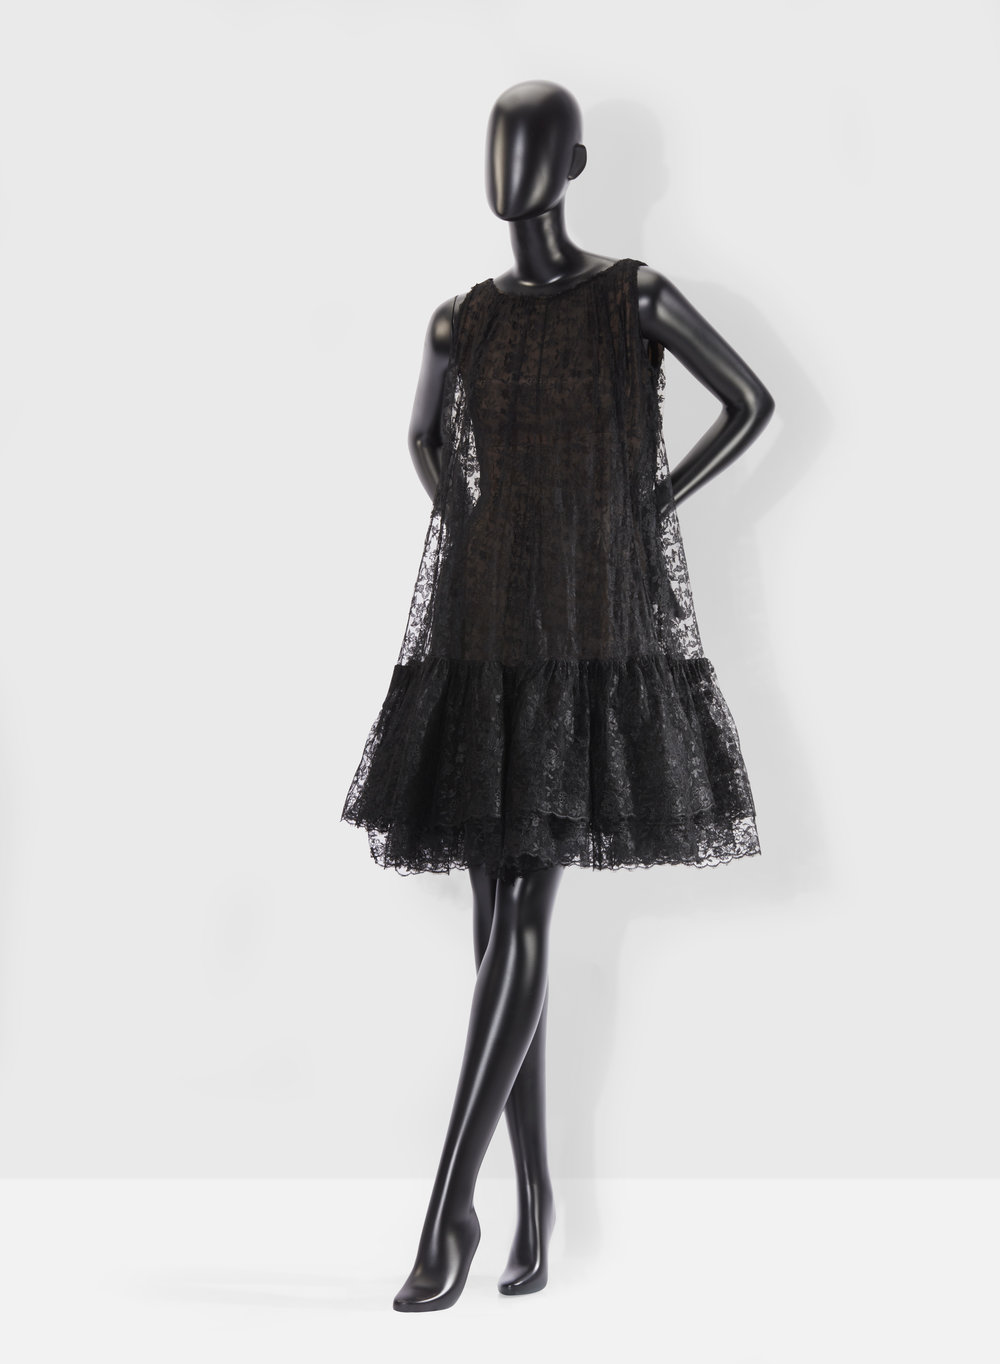 Balenciaga - 1958     A couture lace 'baby doll' dress from Maison Marescot  Estimate : €2,000-3,000